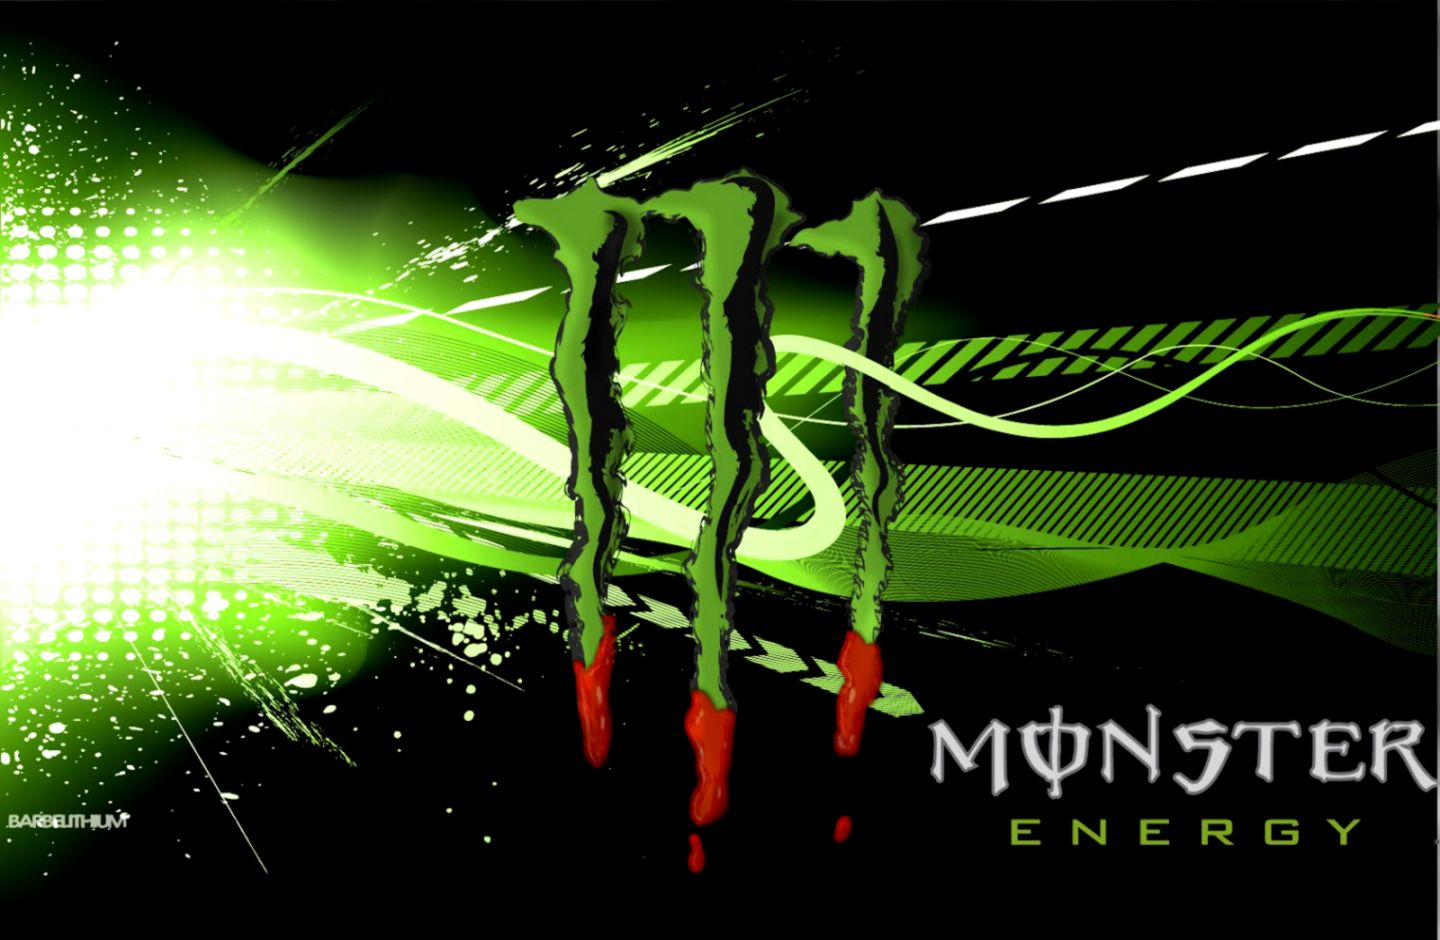 Monster Energy Wallpaper Hd Free Hd Wallpapers